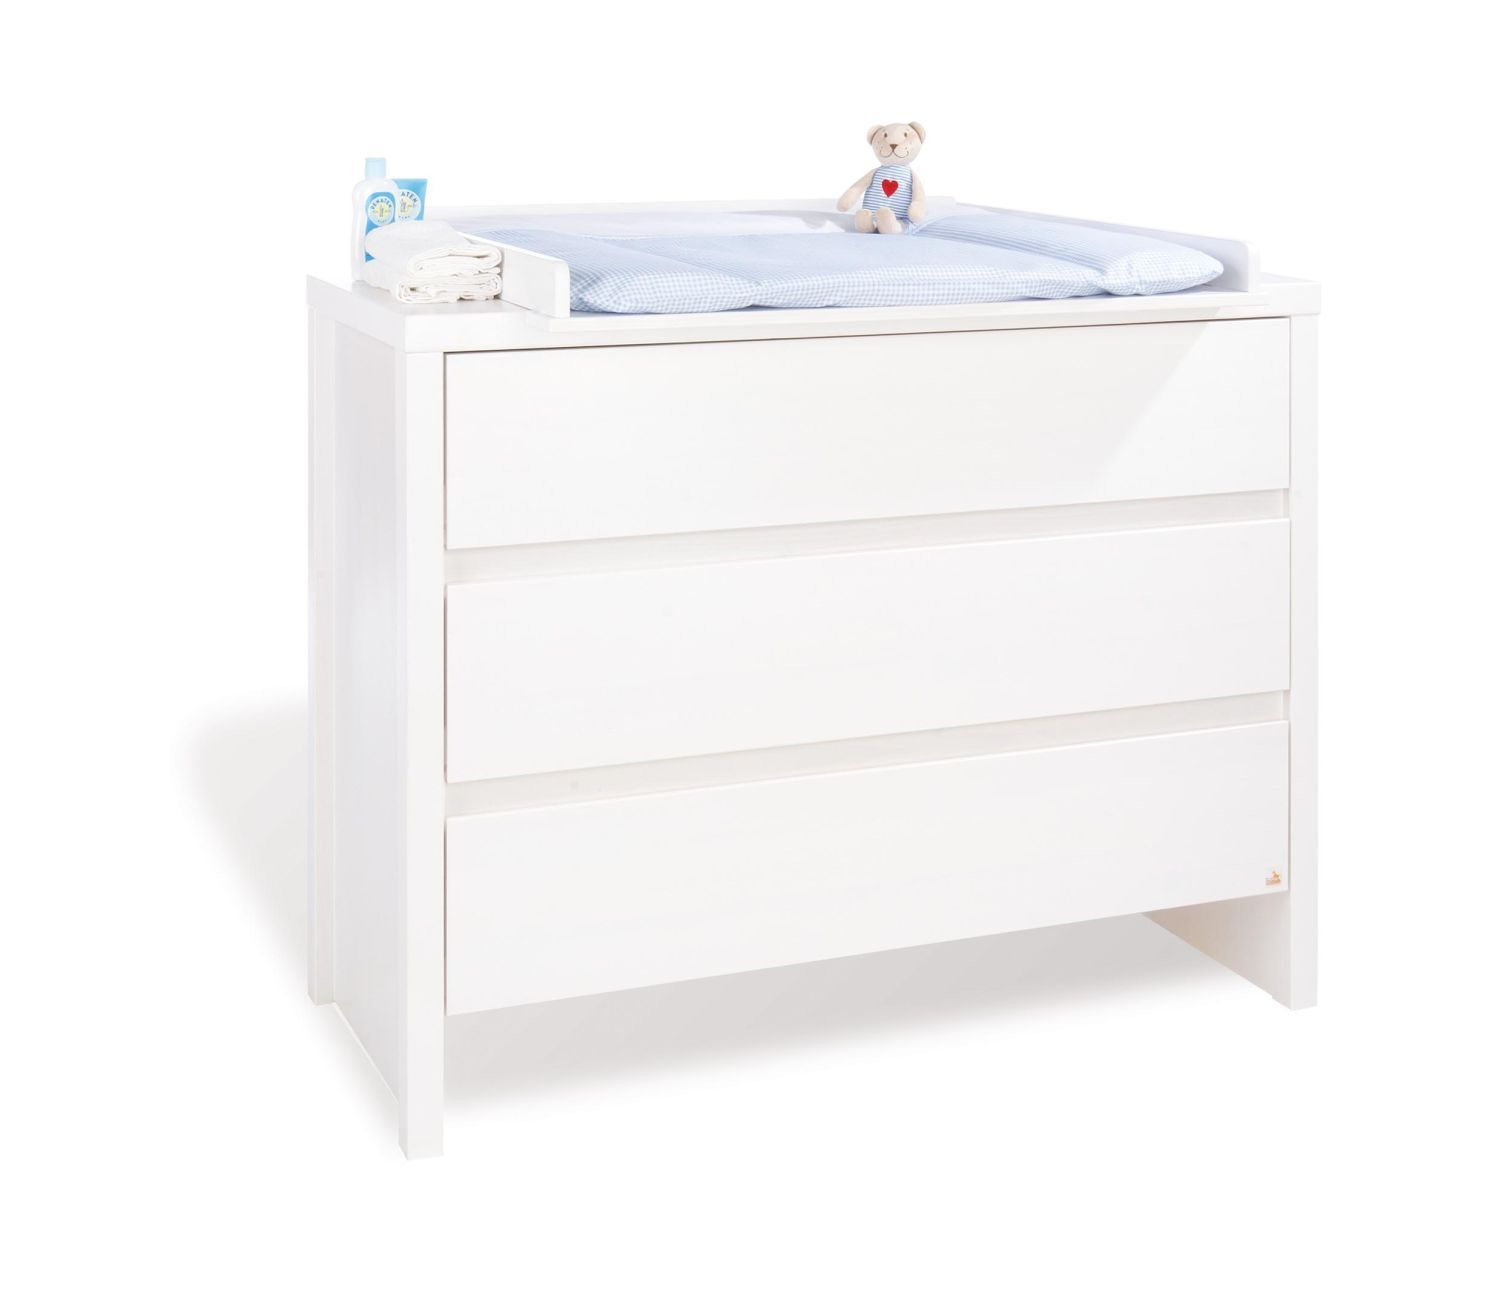 Commode Langer Extra Large Aura En Massif Lasur Blanc For My  # Commode Laquee Blanche Avec Tiroirs Rabattables